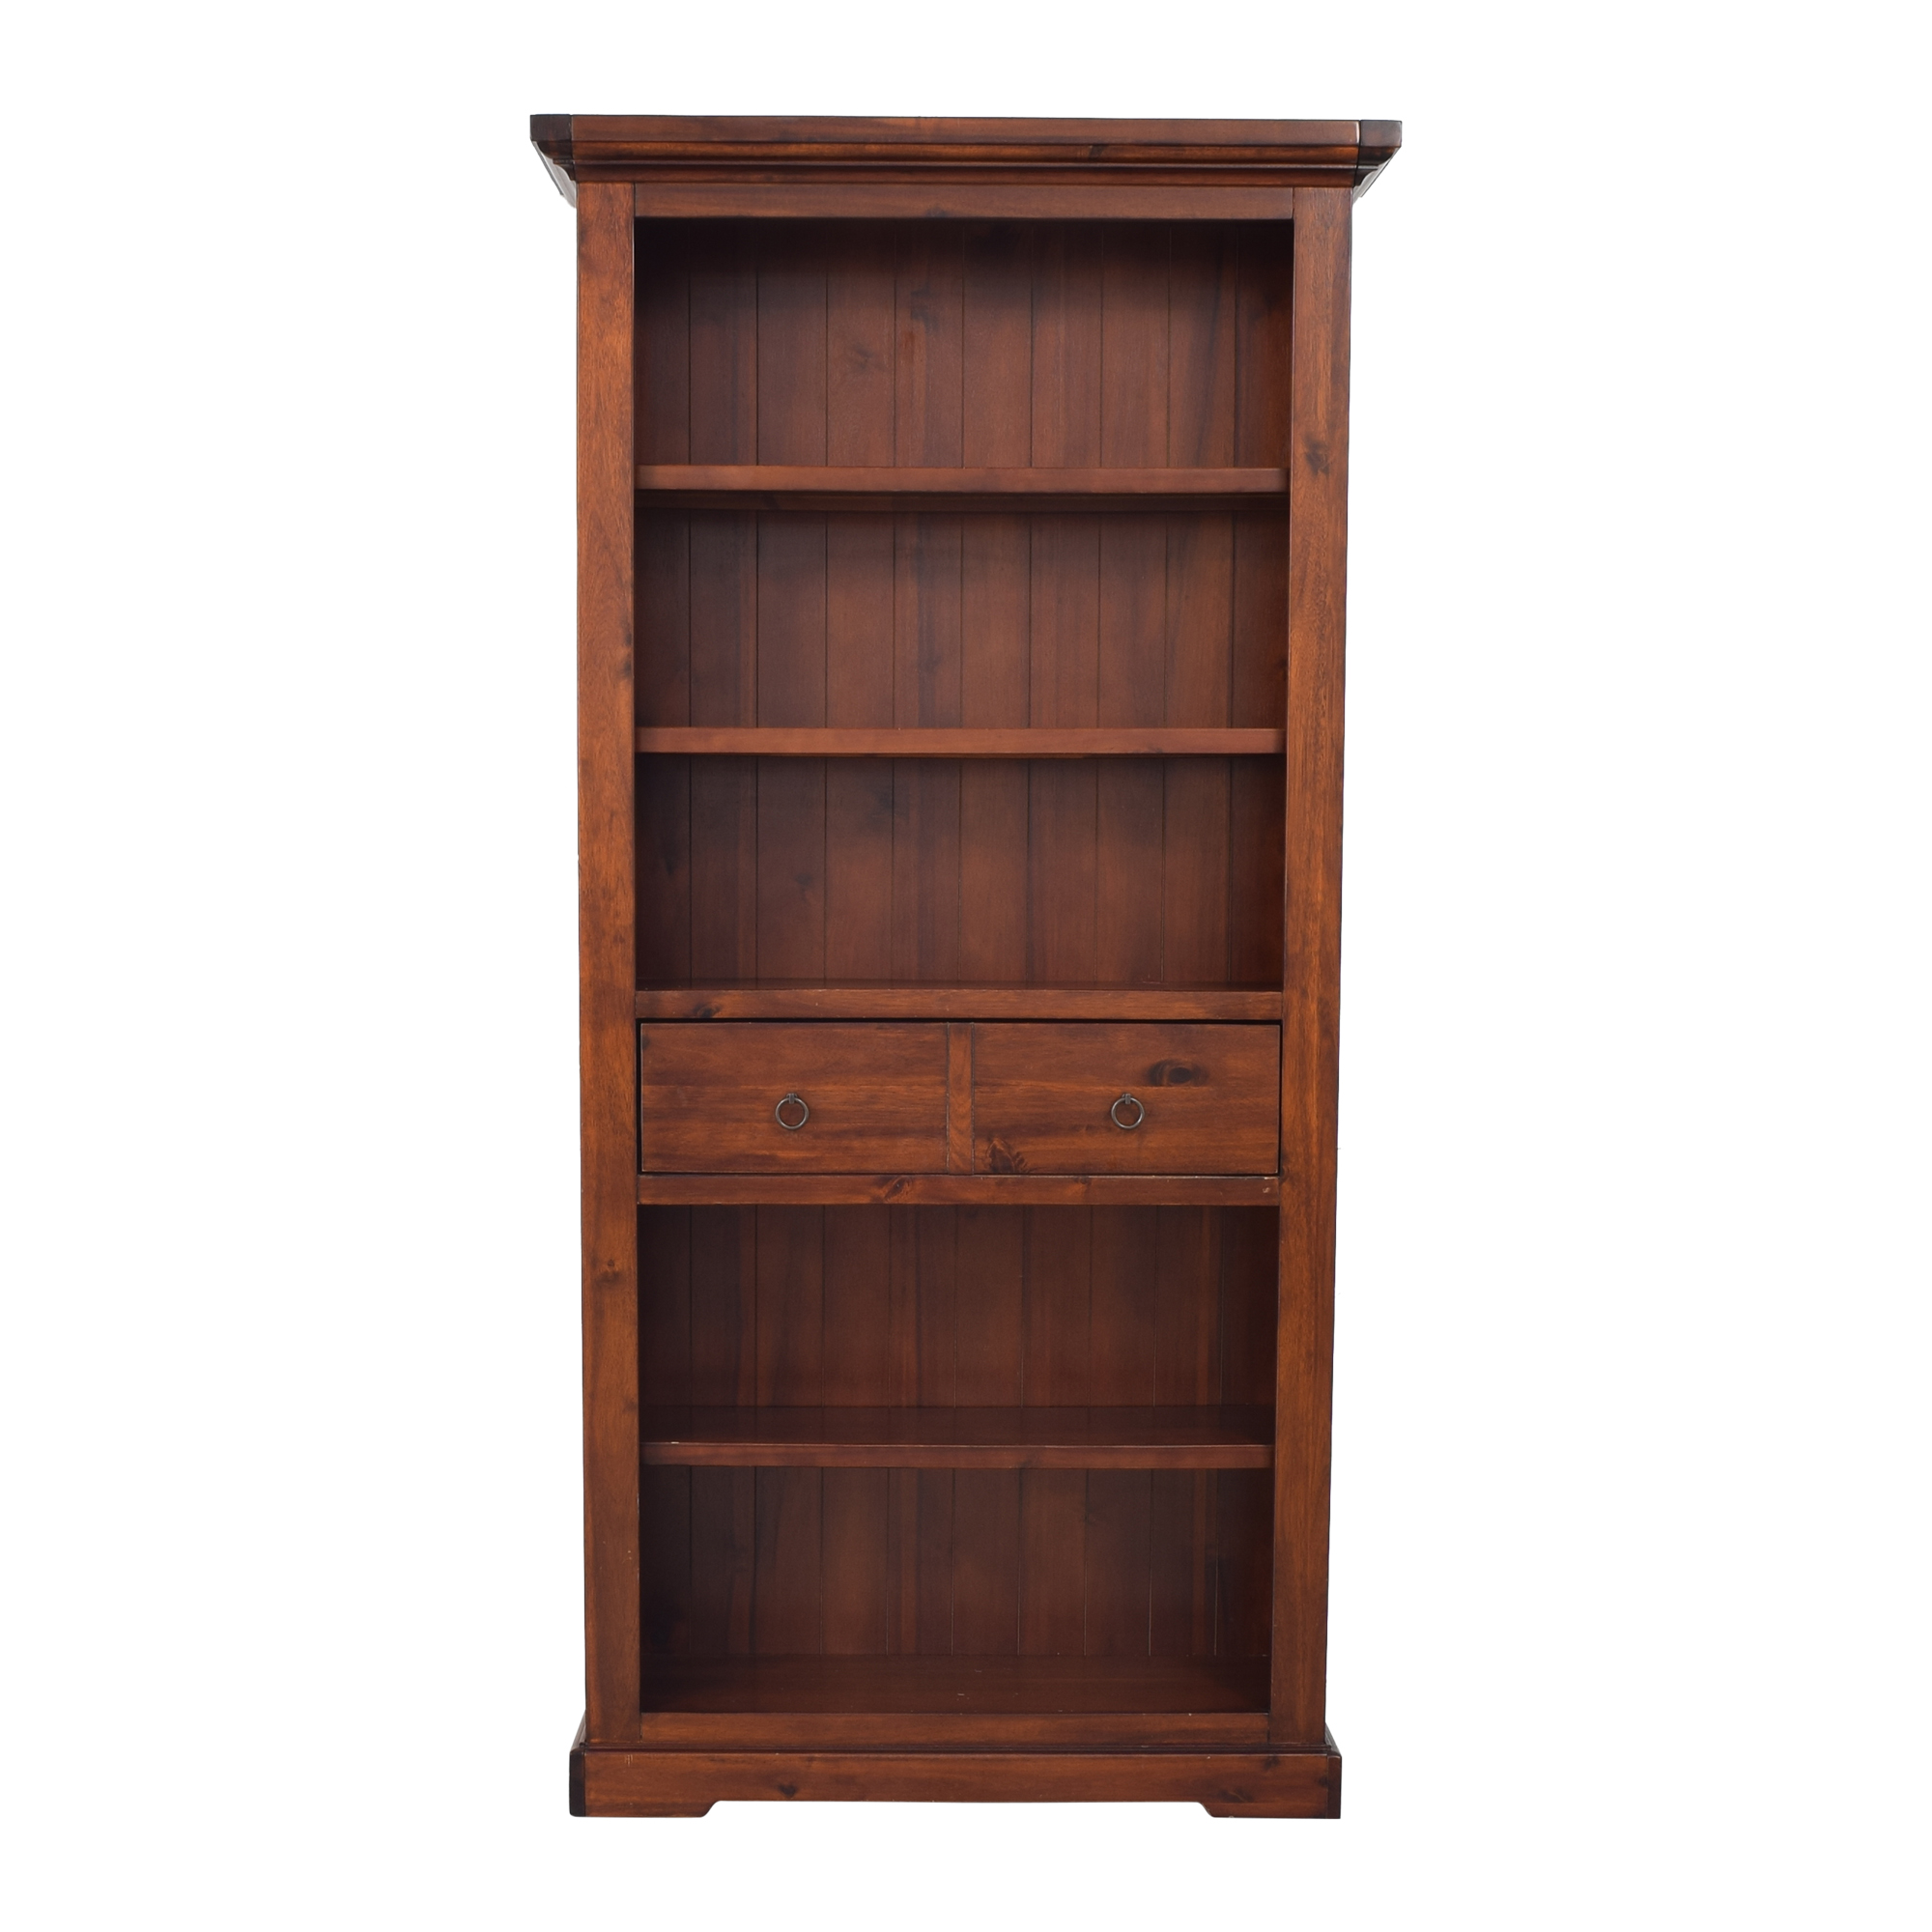 Tall Bookshelf with Drawer Bookcases & Shelving